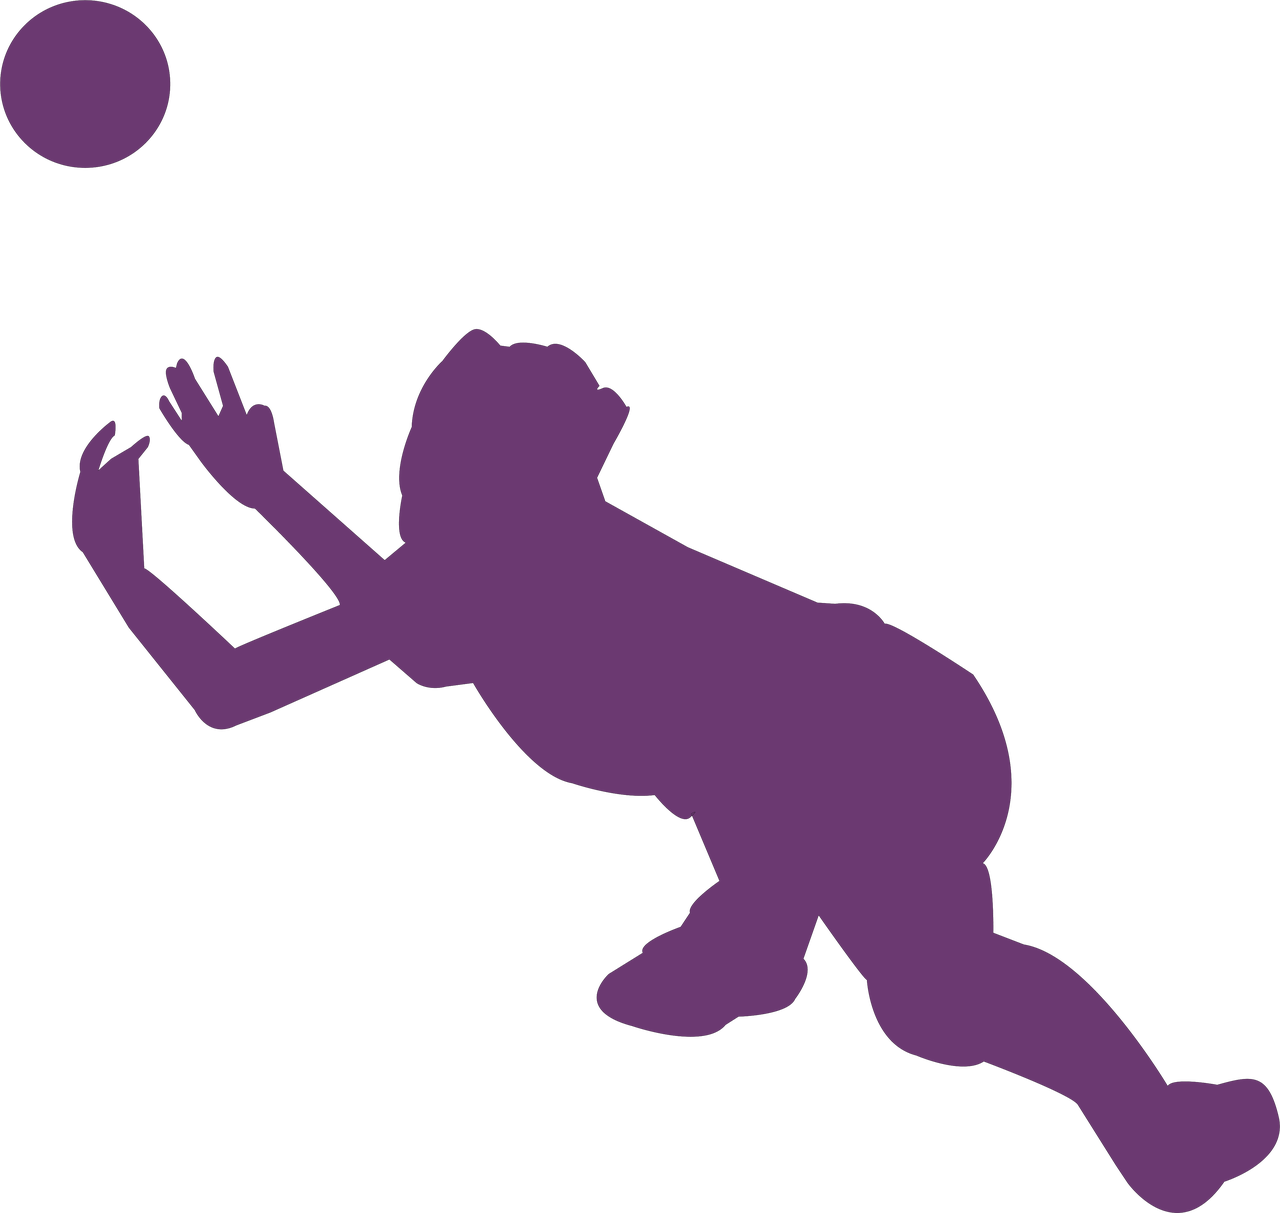 Volleyball Silhouette SVG Cut File